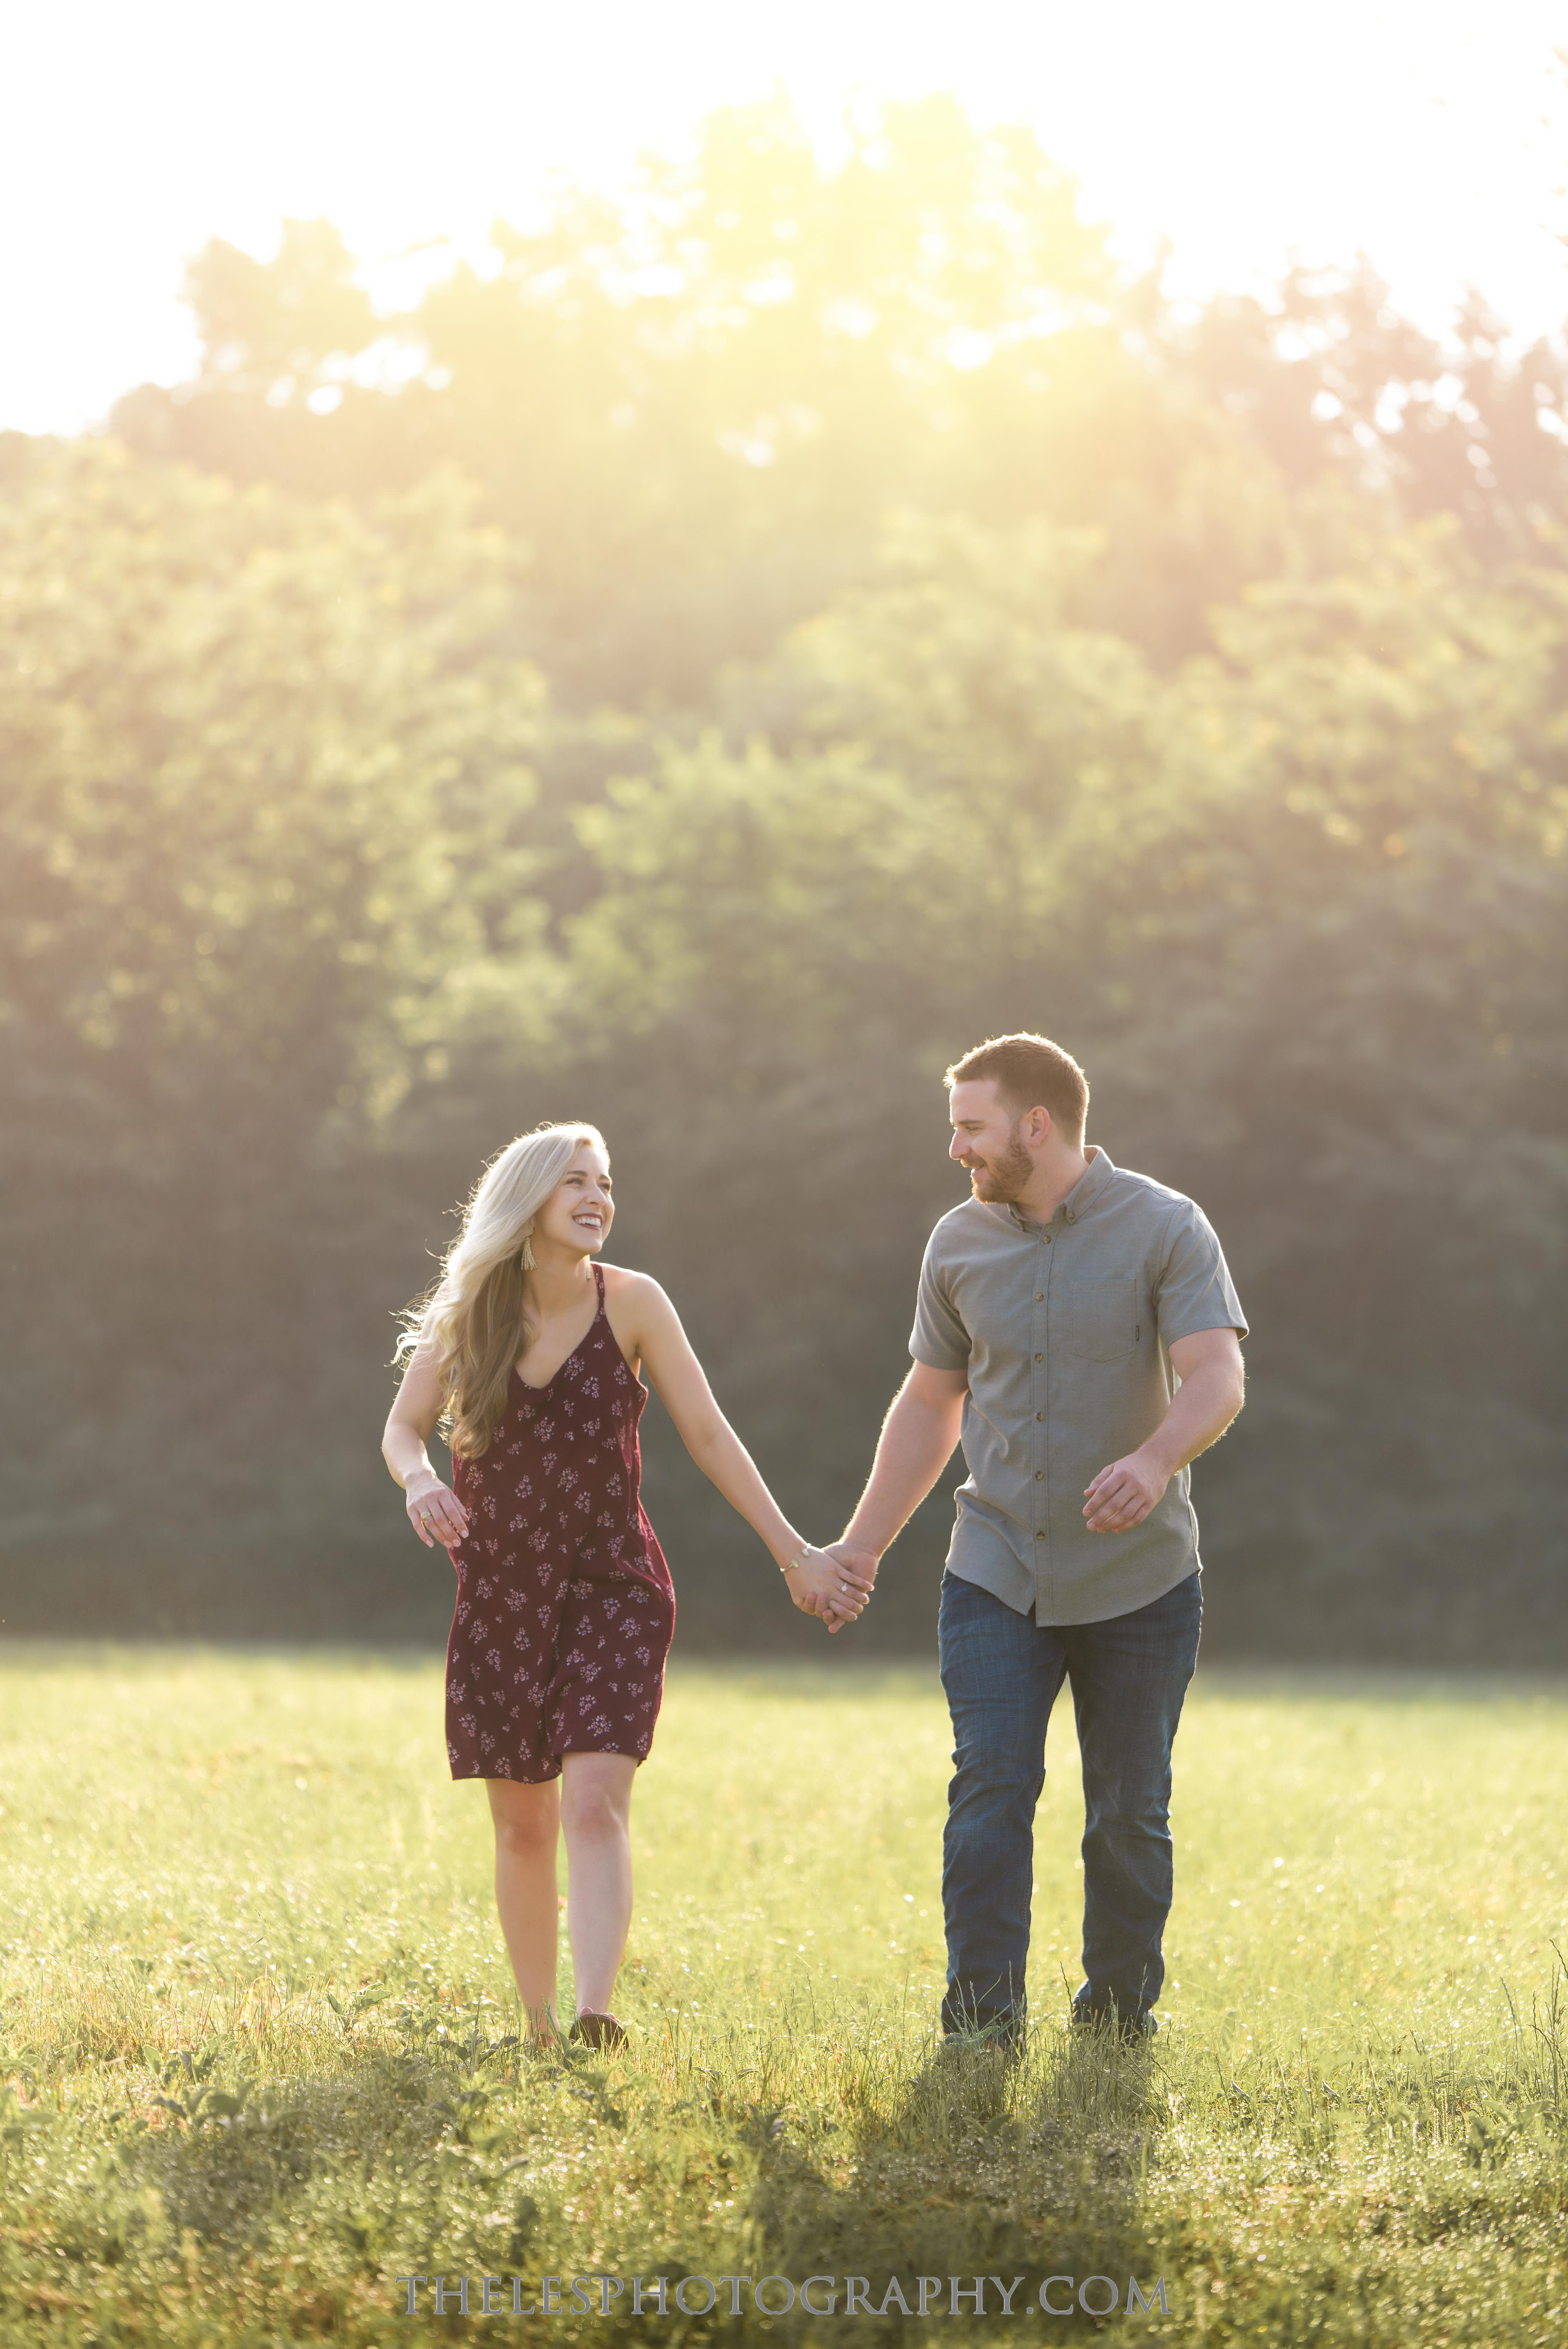 The Les Photography - Dallas Wedding Photographer - Trinity Groves Engagement - Haley and Noah 02